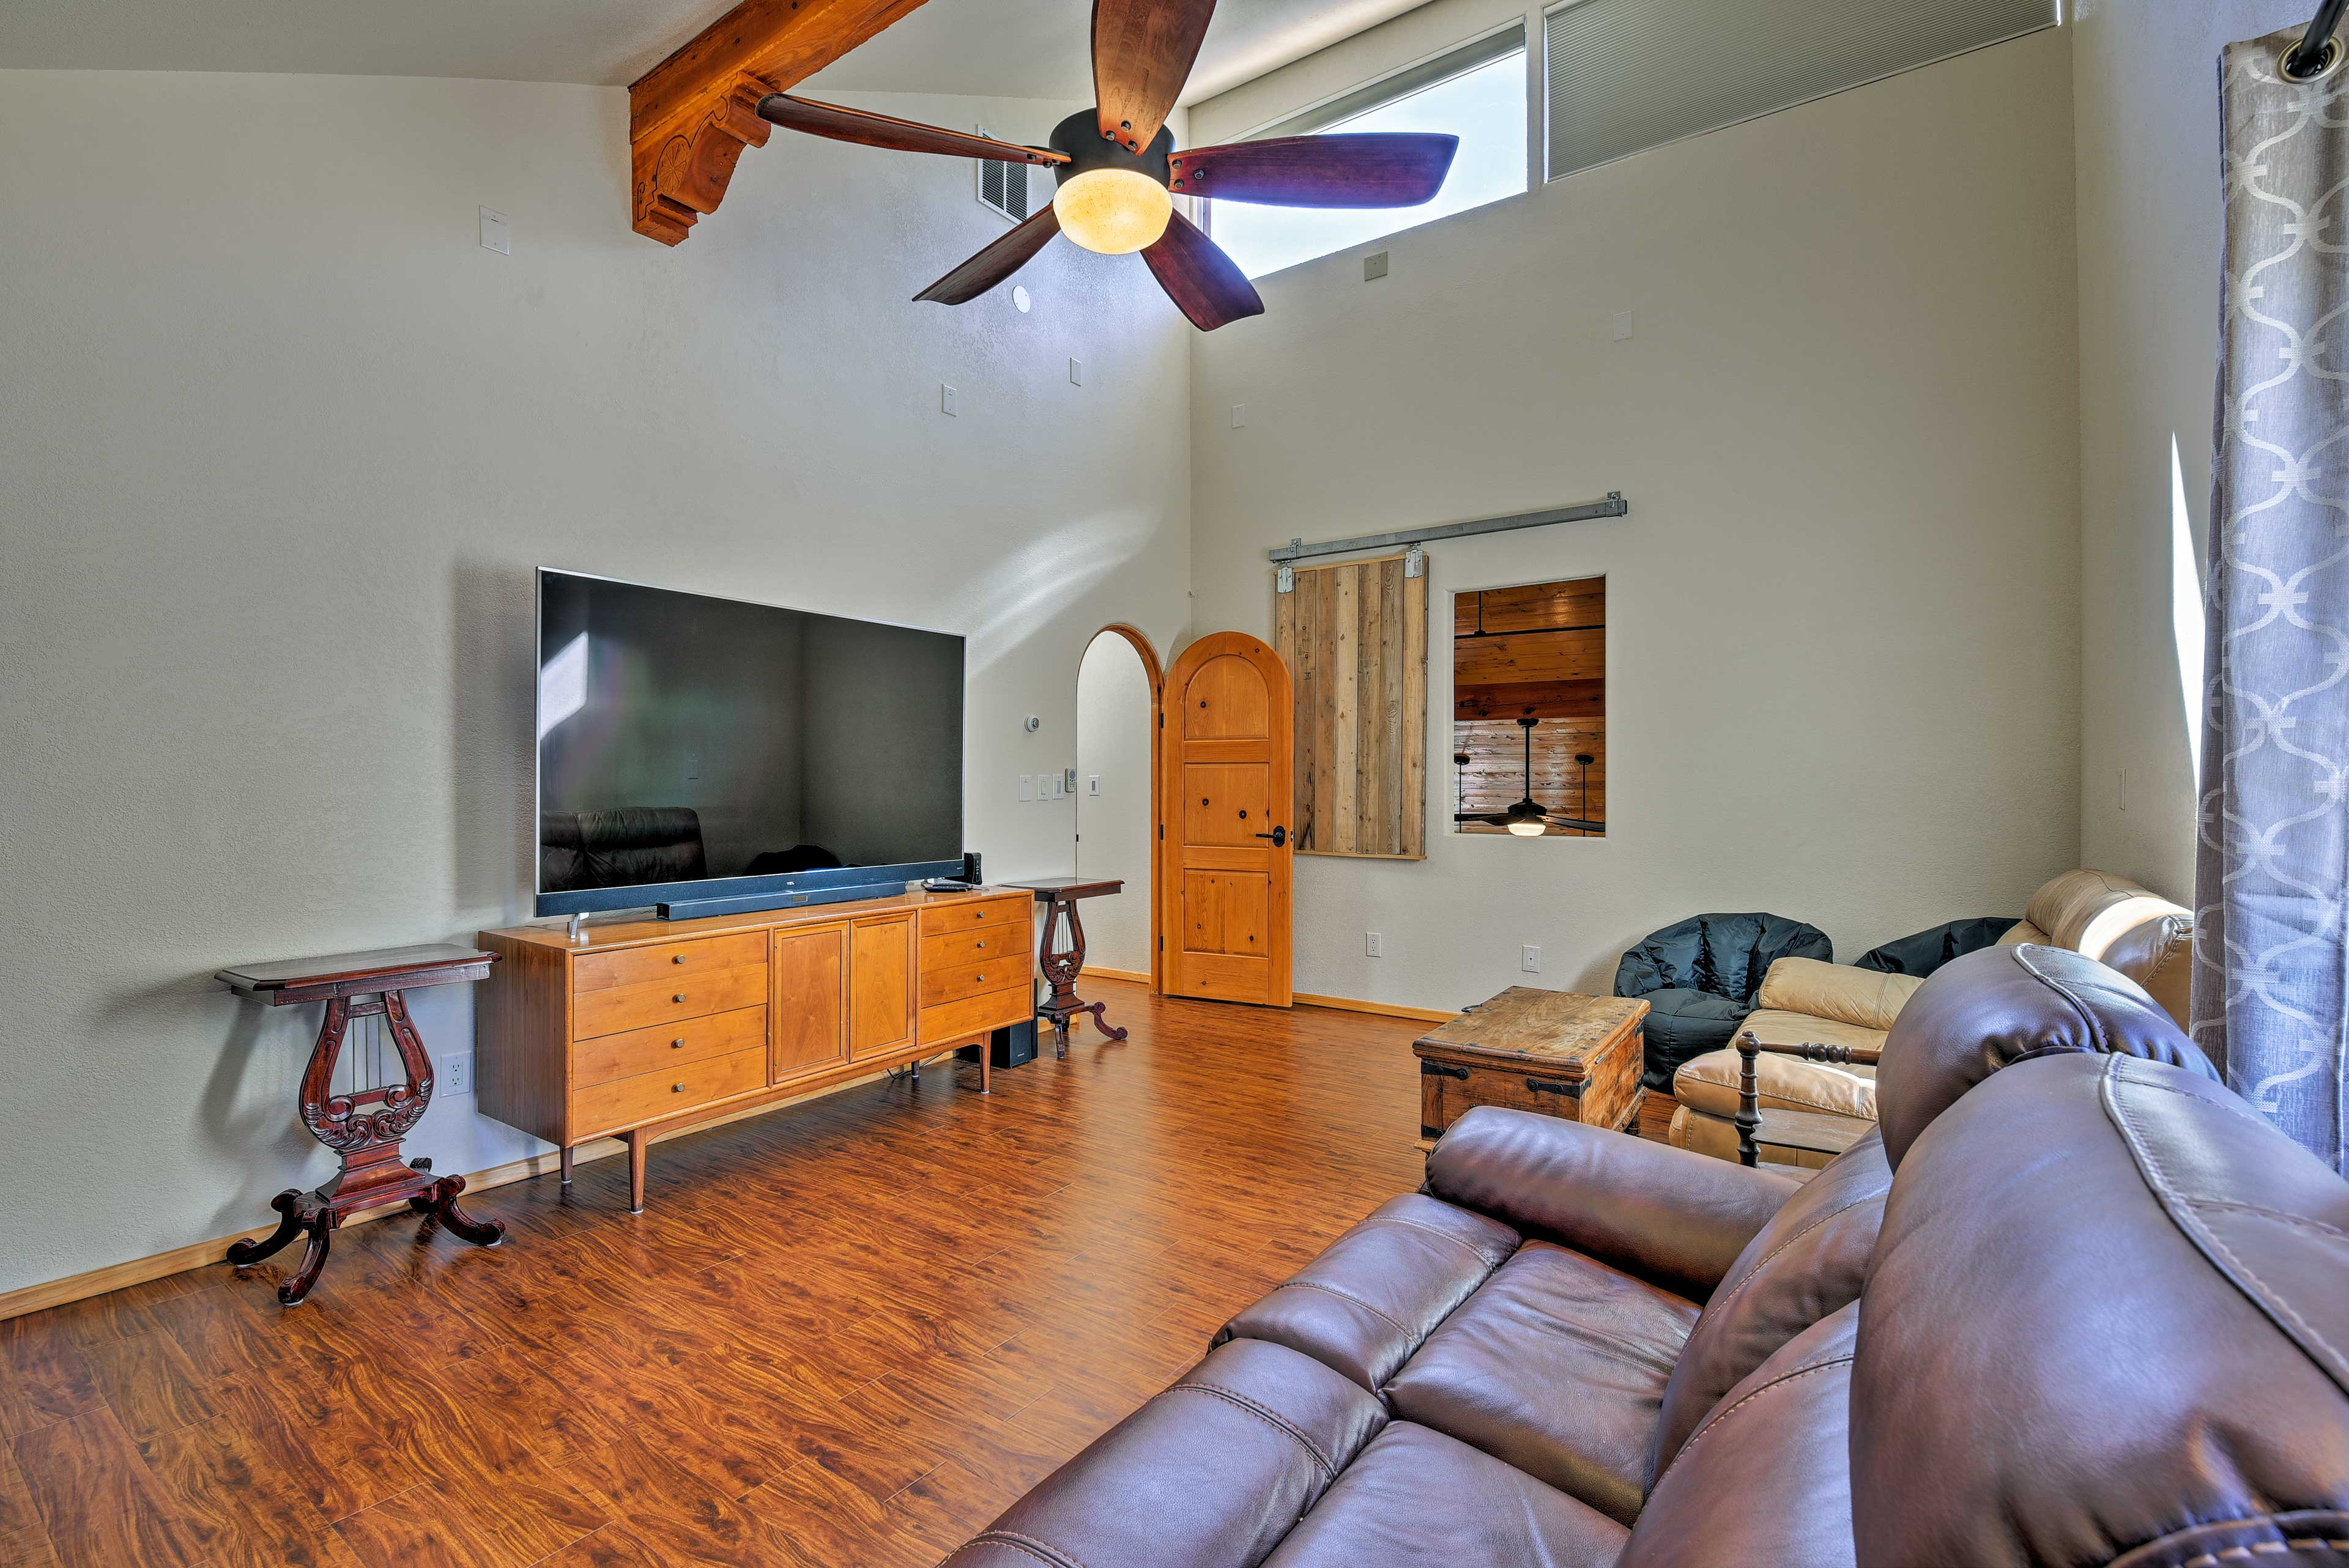 This bedroom offer a 72-inch flat-screen satellite TV with plush seating.